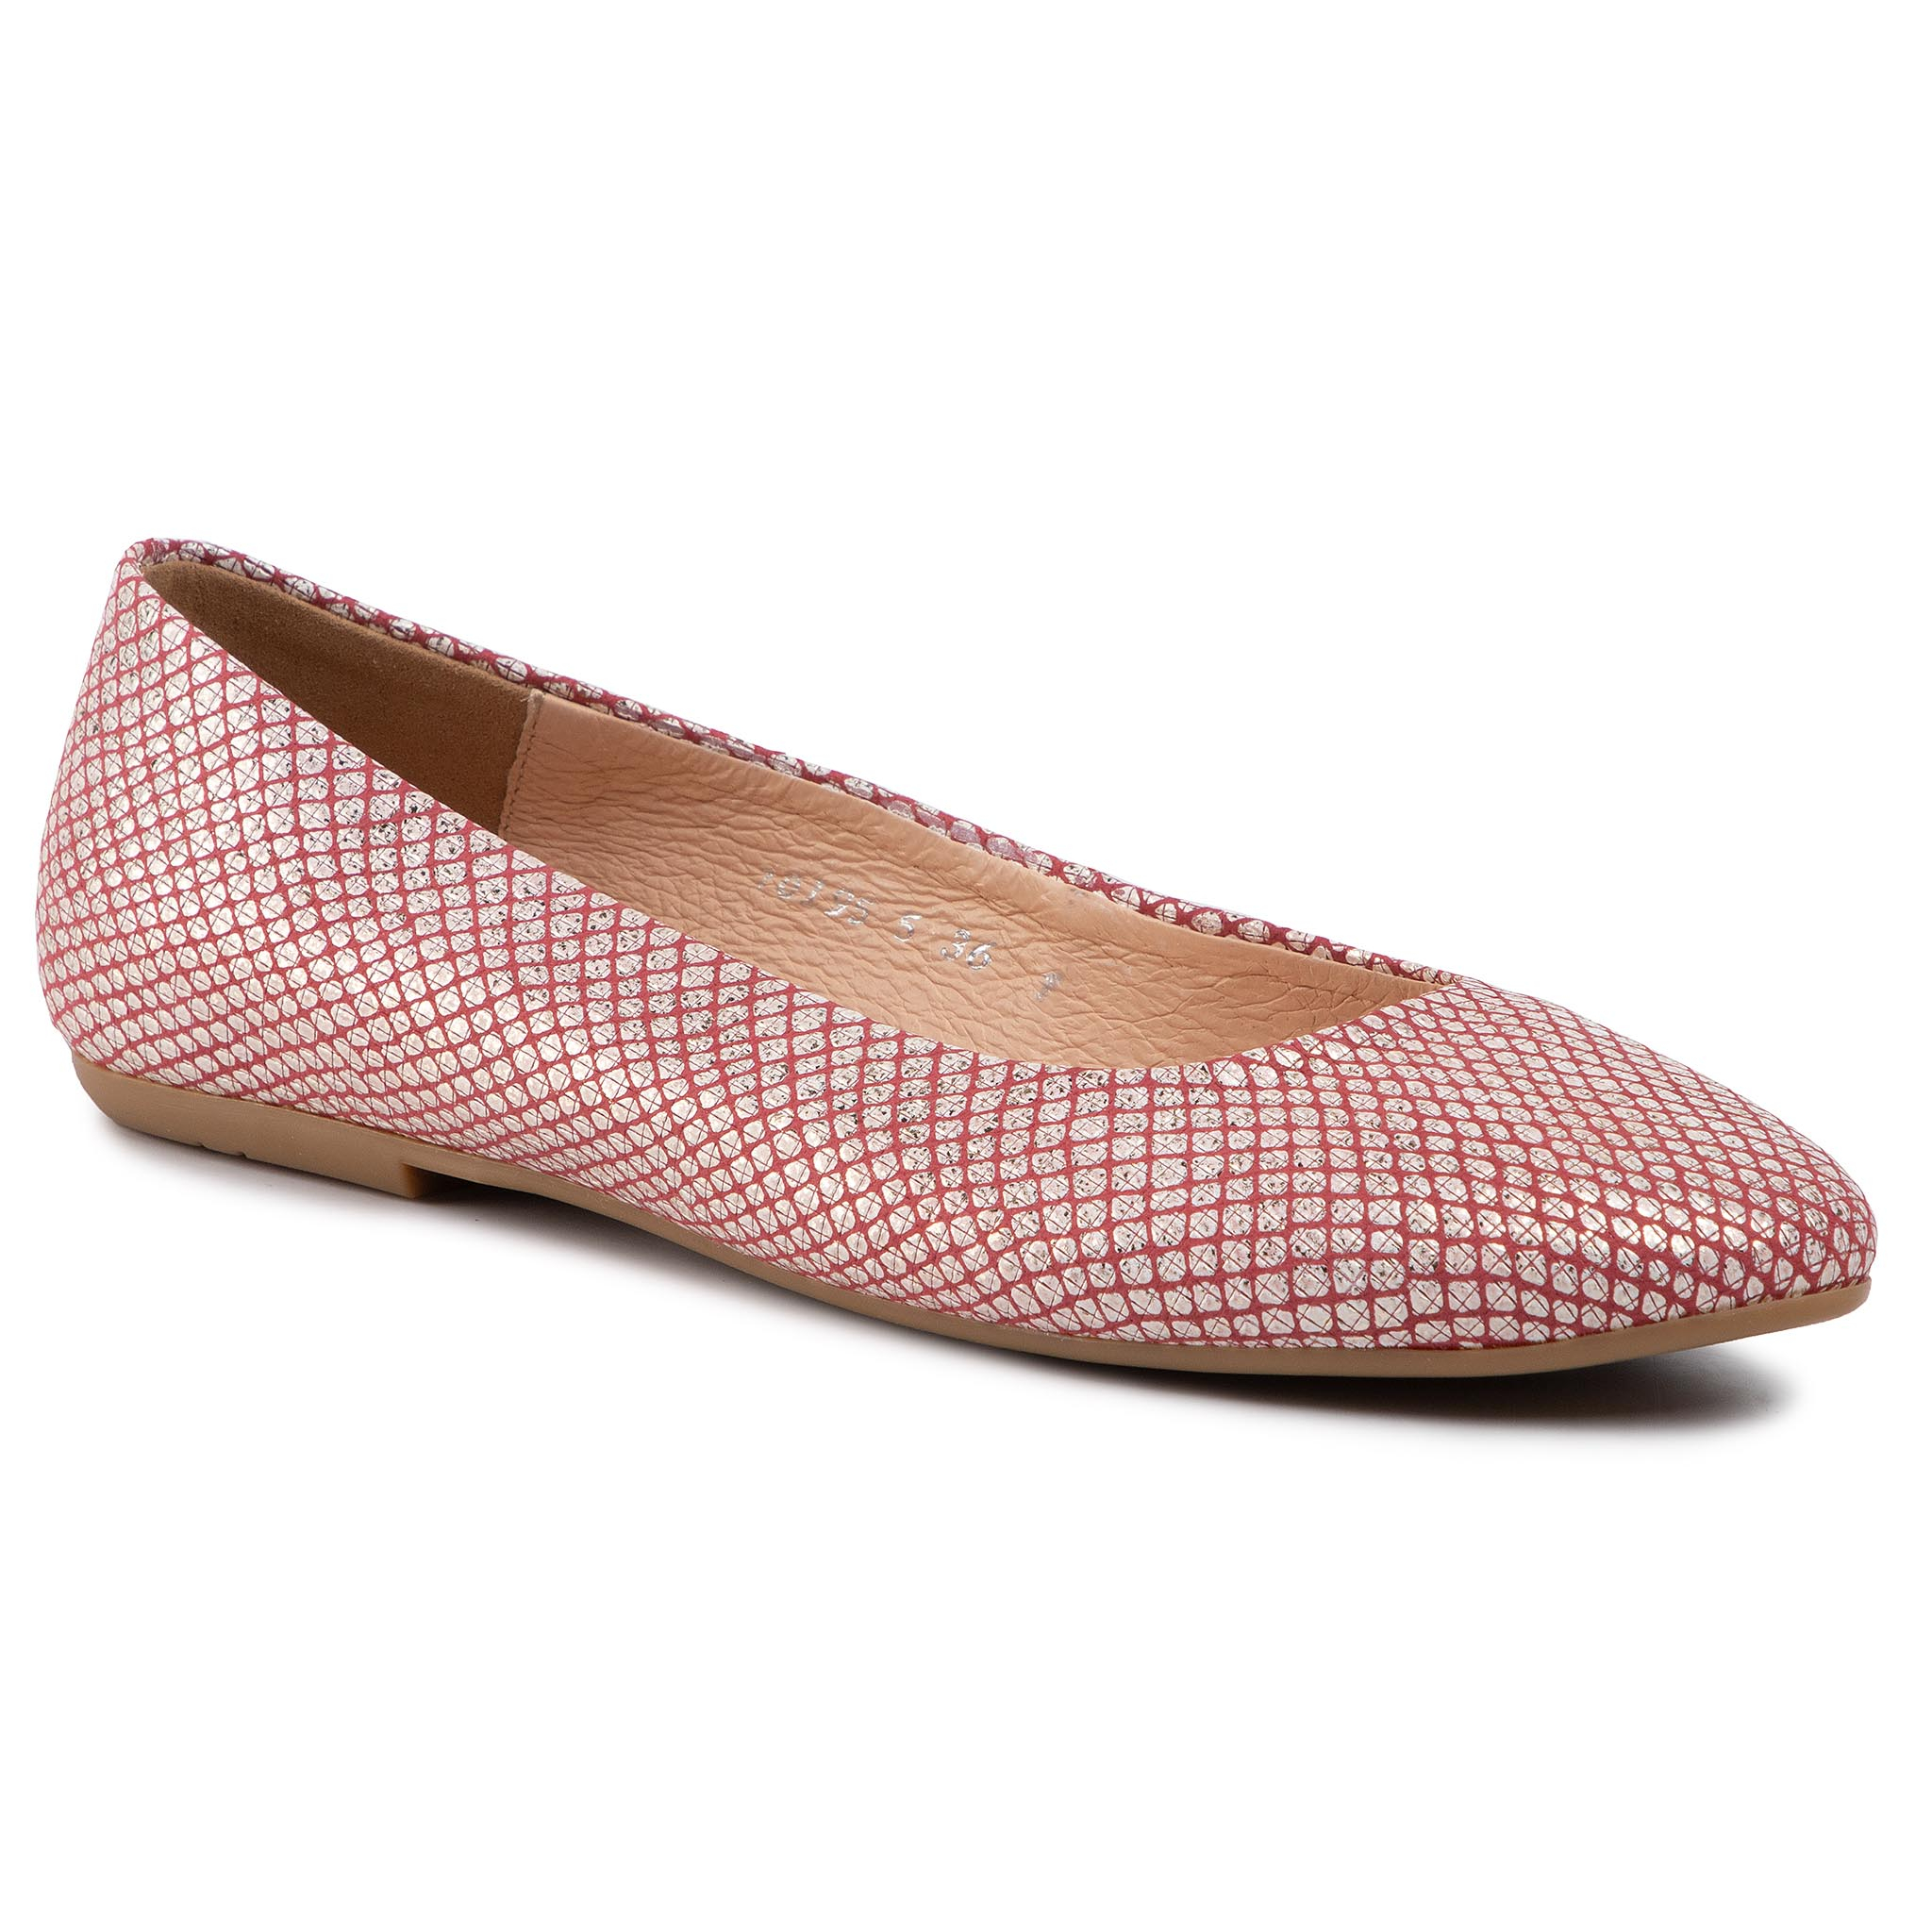 Image of Ballerinas BALDACCINI - 1019500 Rose Metal